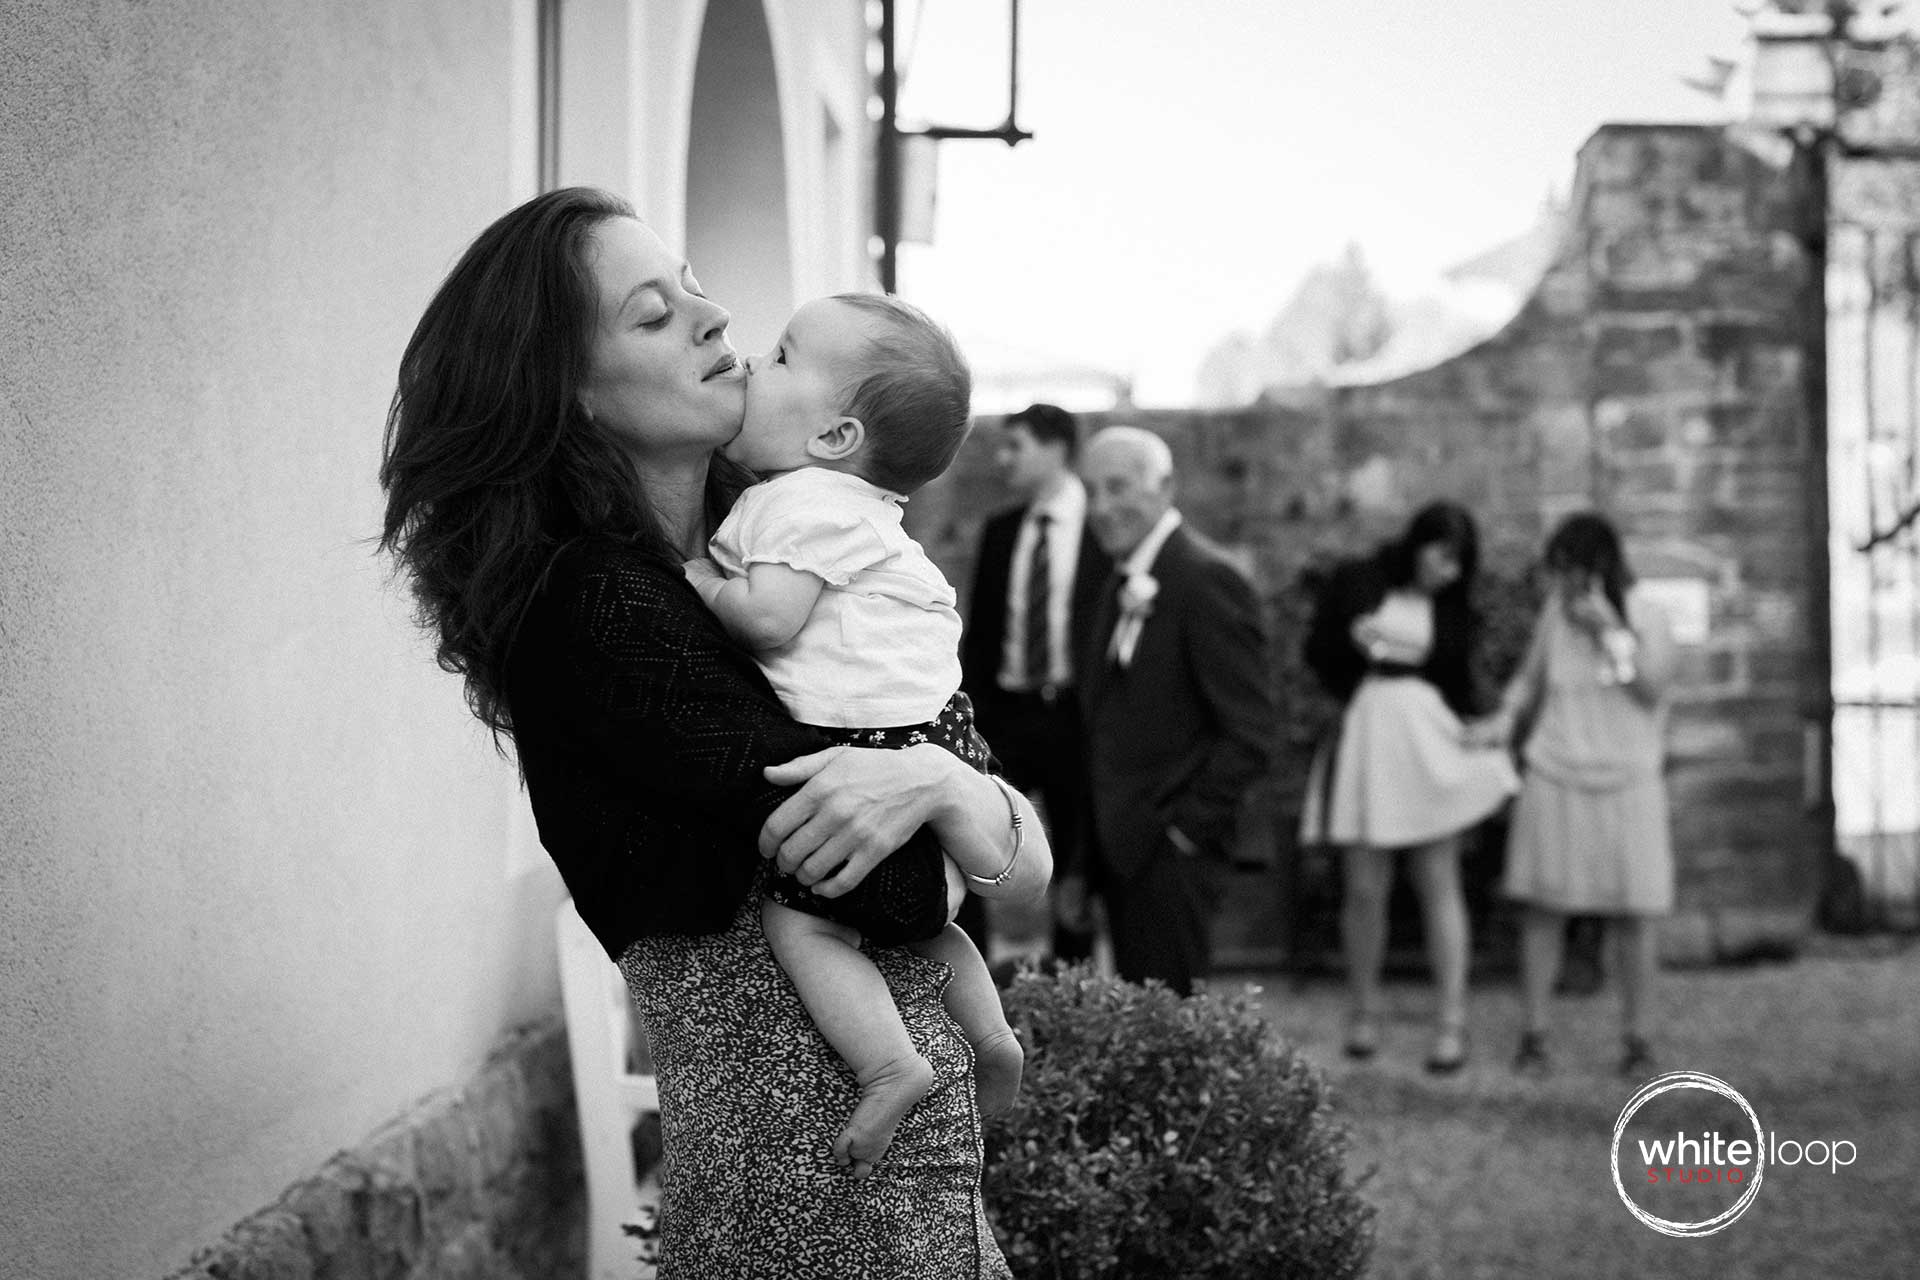 The very little baby is in the arms of his mother, giving a big little baby kiss in black and white.